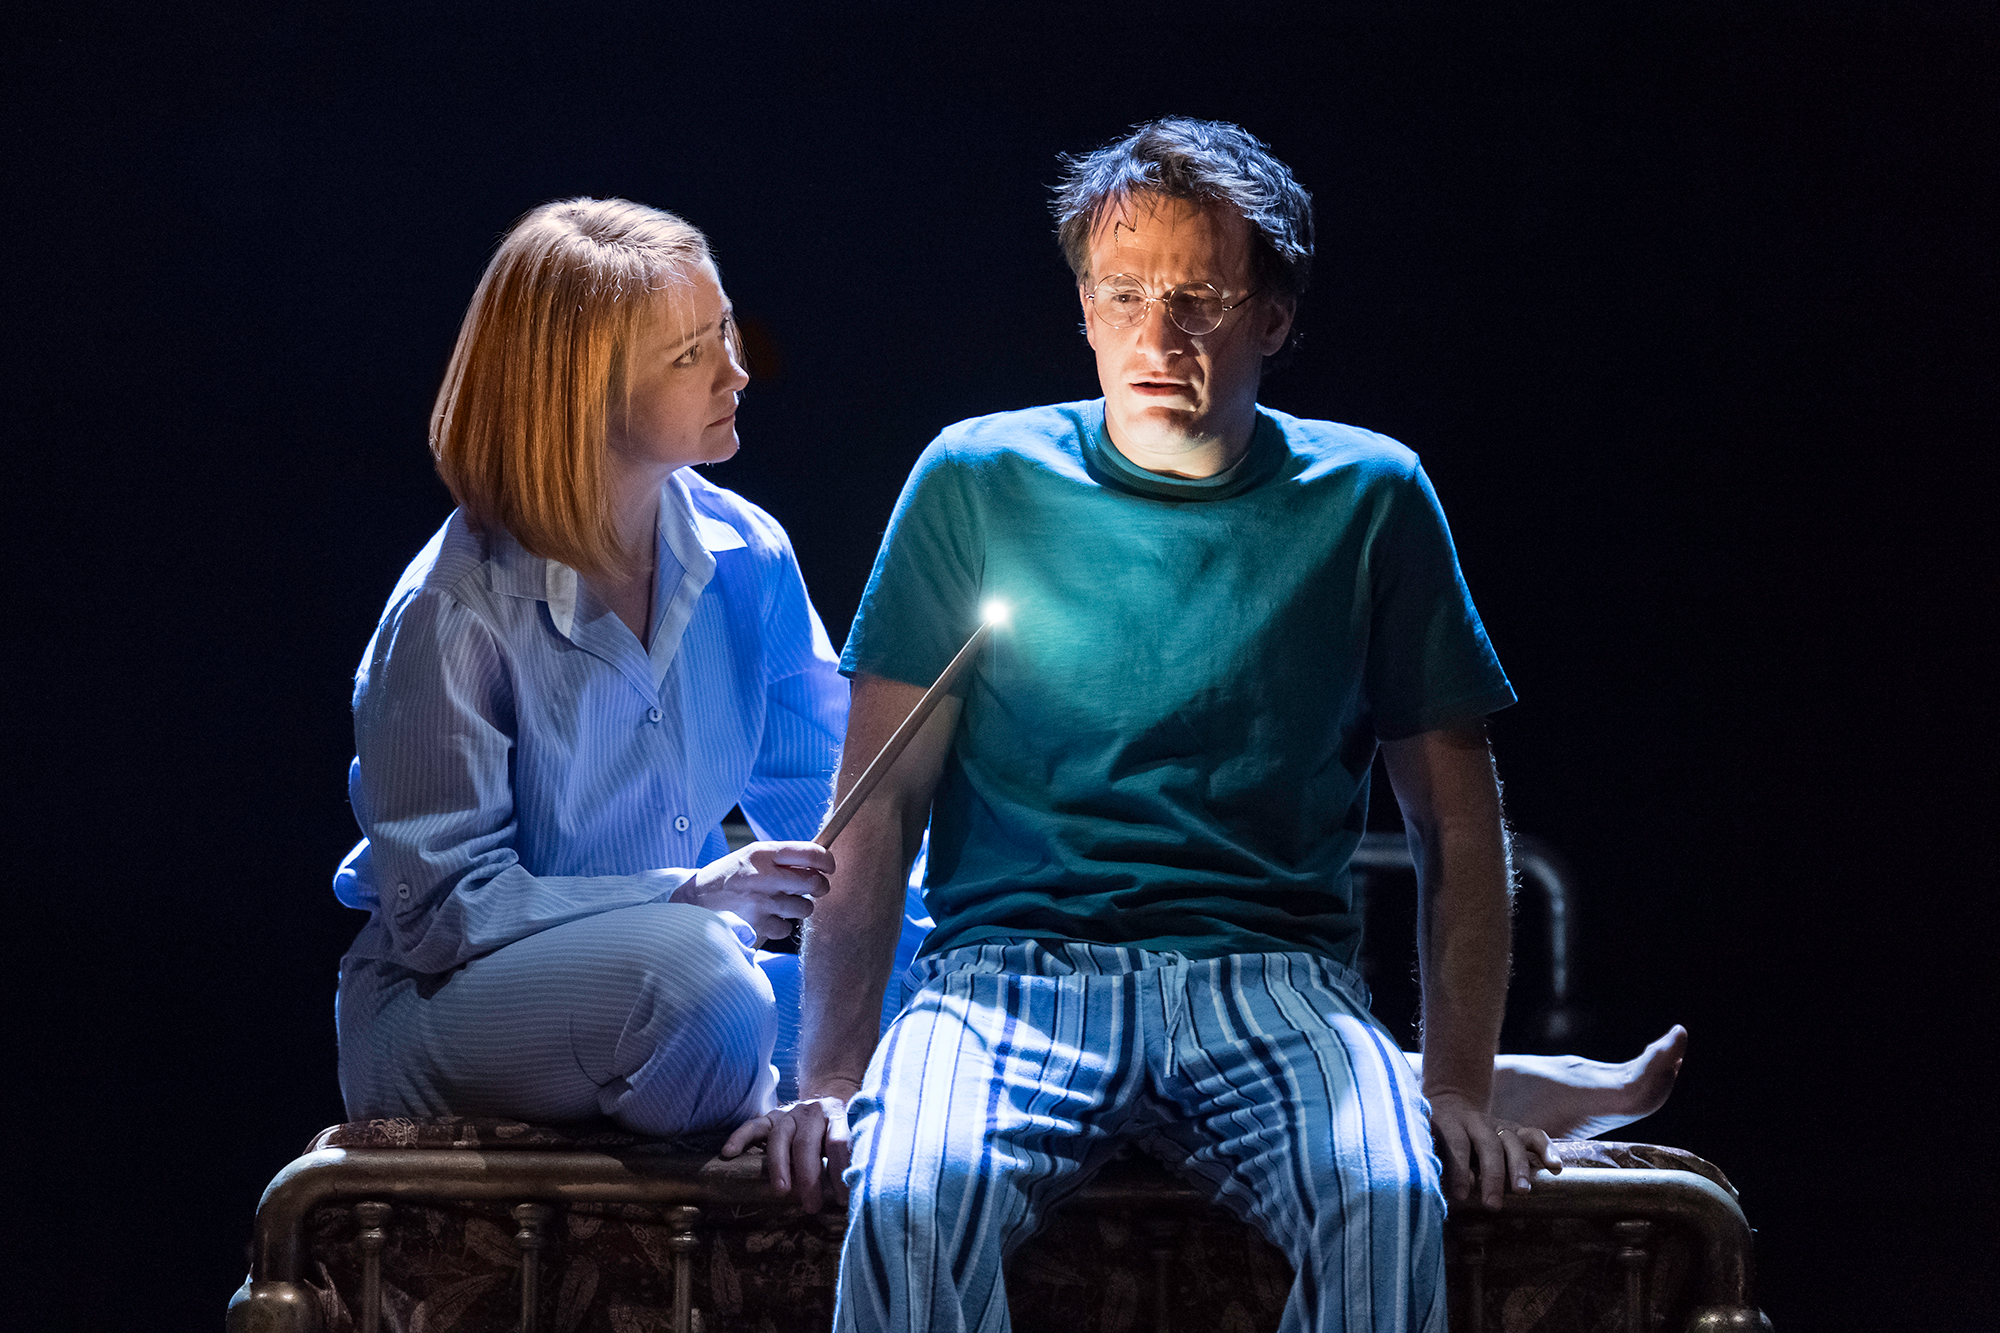 From left: Poppy Miller as Ginny Potter and Jamie Parker as Harry Potter in Harry Potter and the Cursed Child.